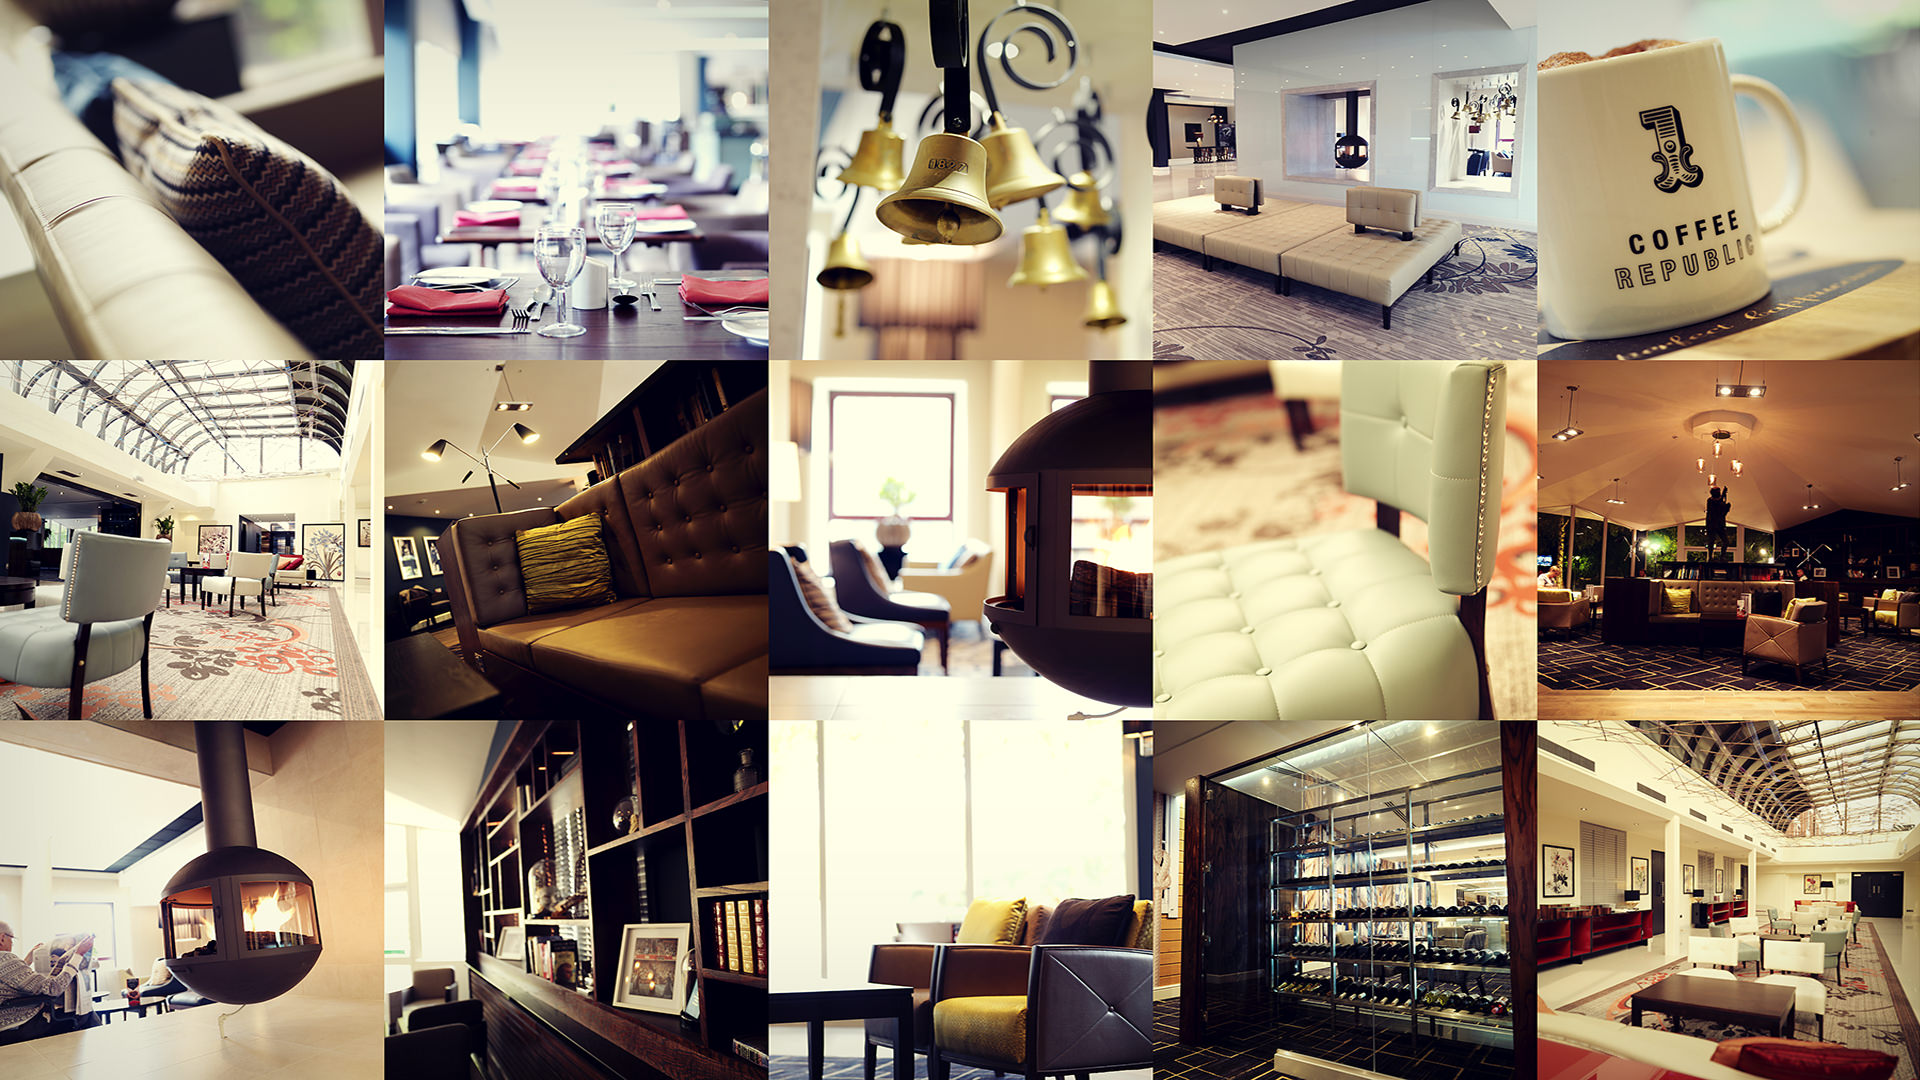 Commercial interior photographer hotels shops